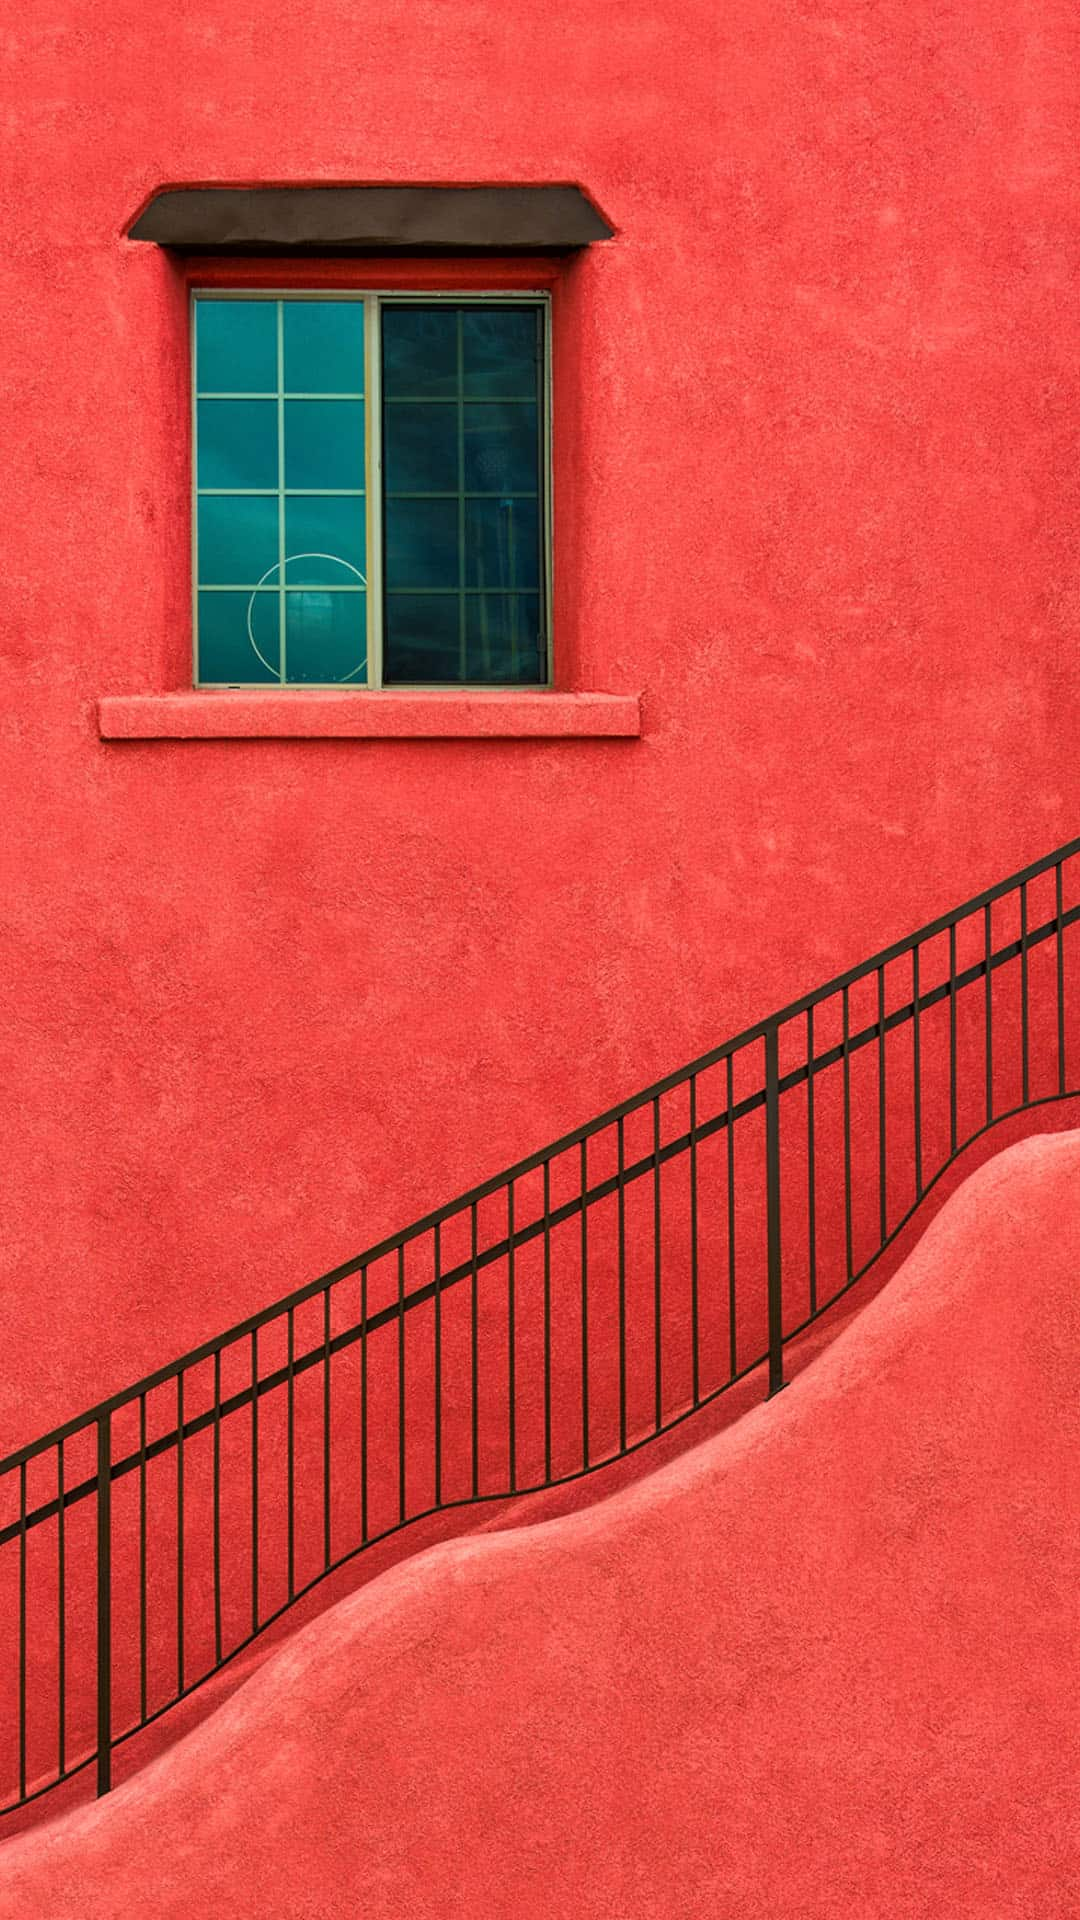 red-painted-house-wall-stairs-android-wallpaper